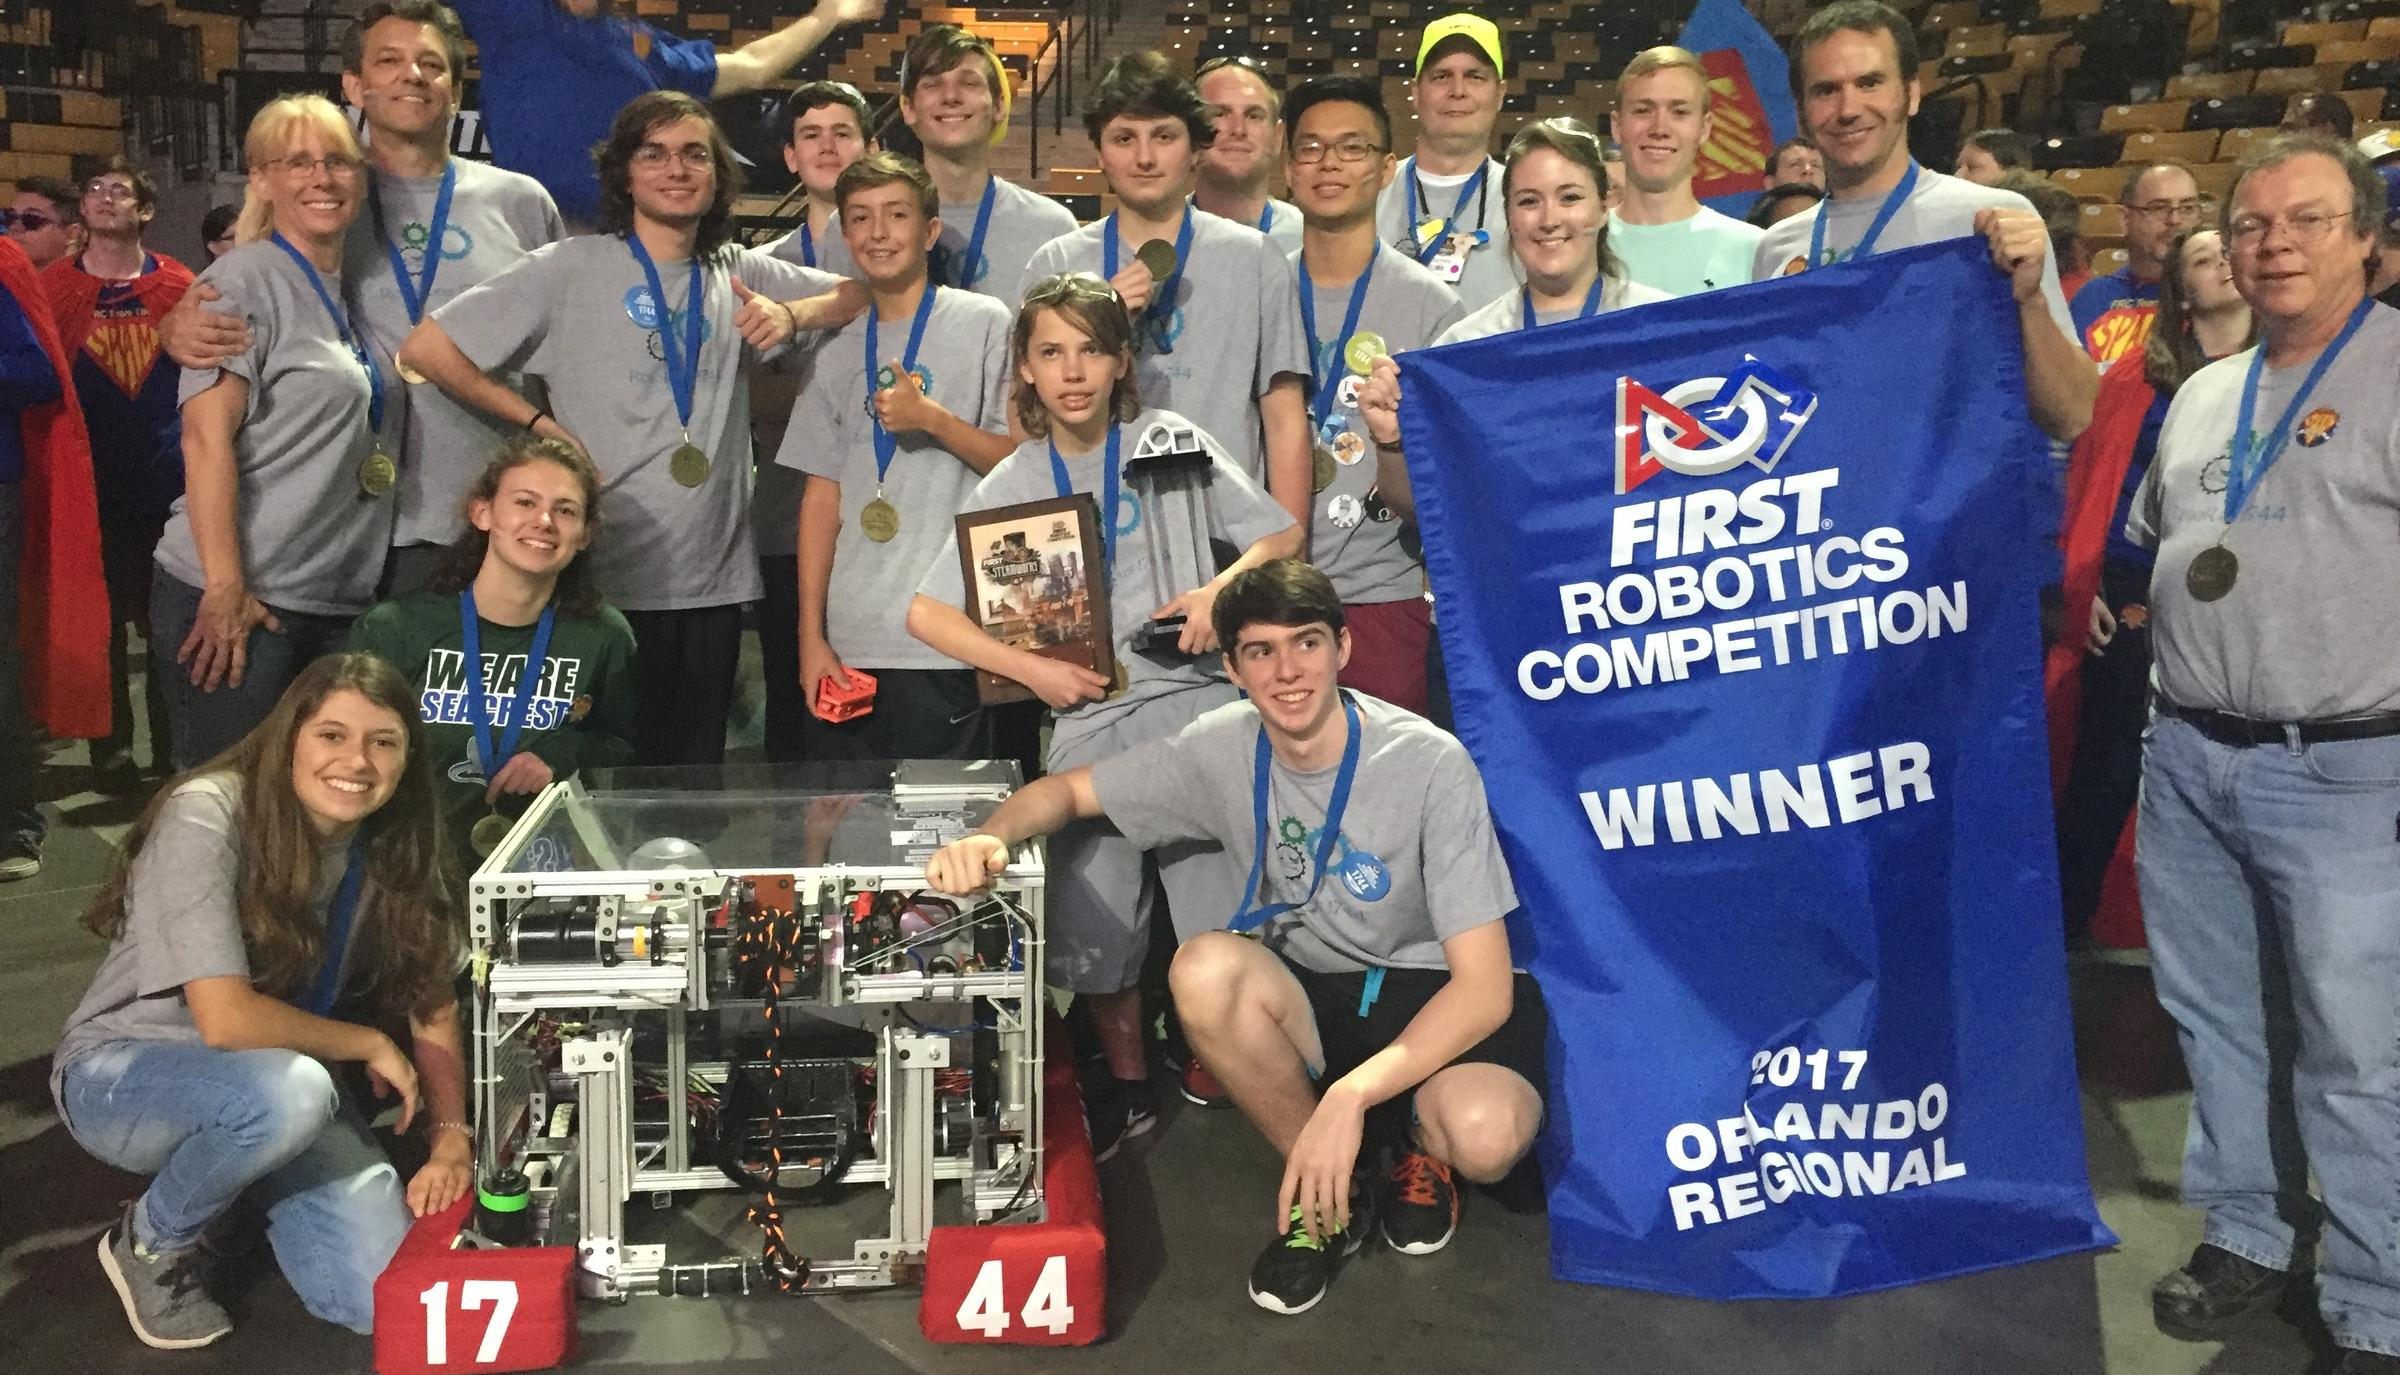 Naples Robotics Team Brings Stem Prowess To Texas World Championship